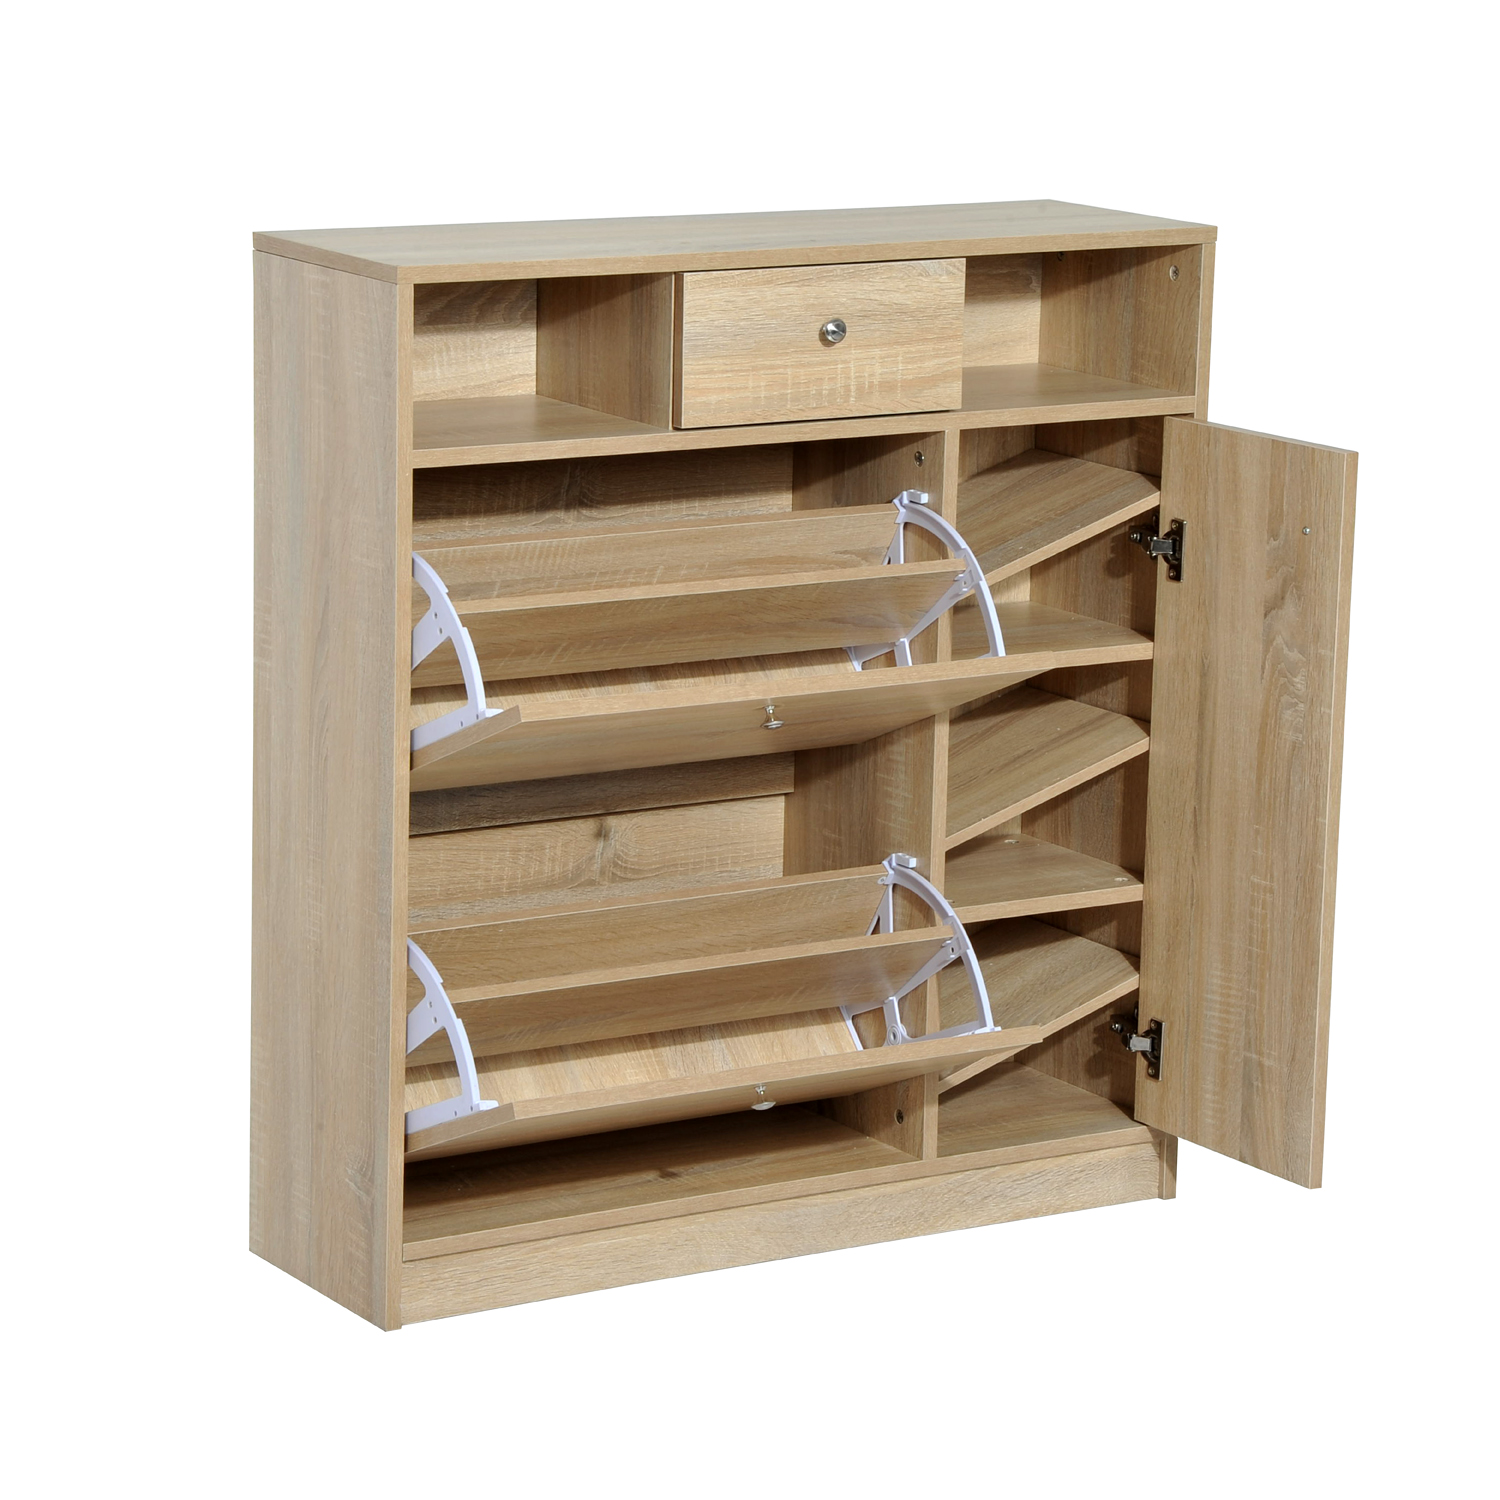 HomCom Shoe Cabinet - Pull Out Door & Drawer Organizer Closet - White Oak